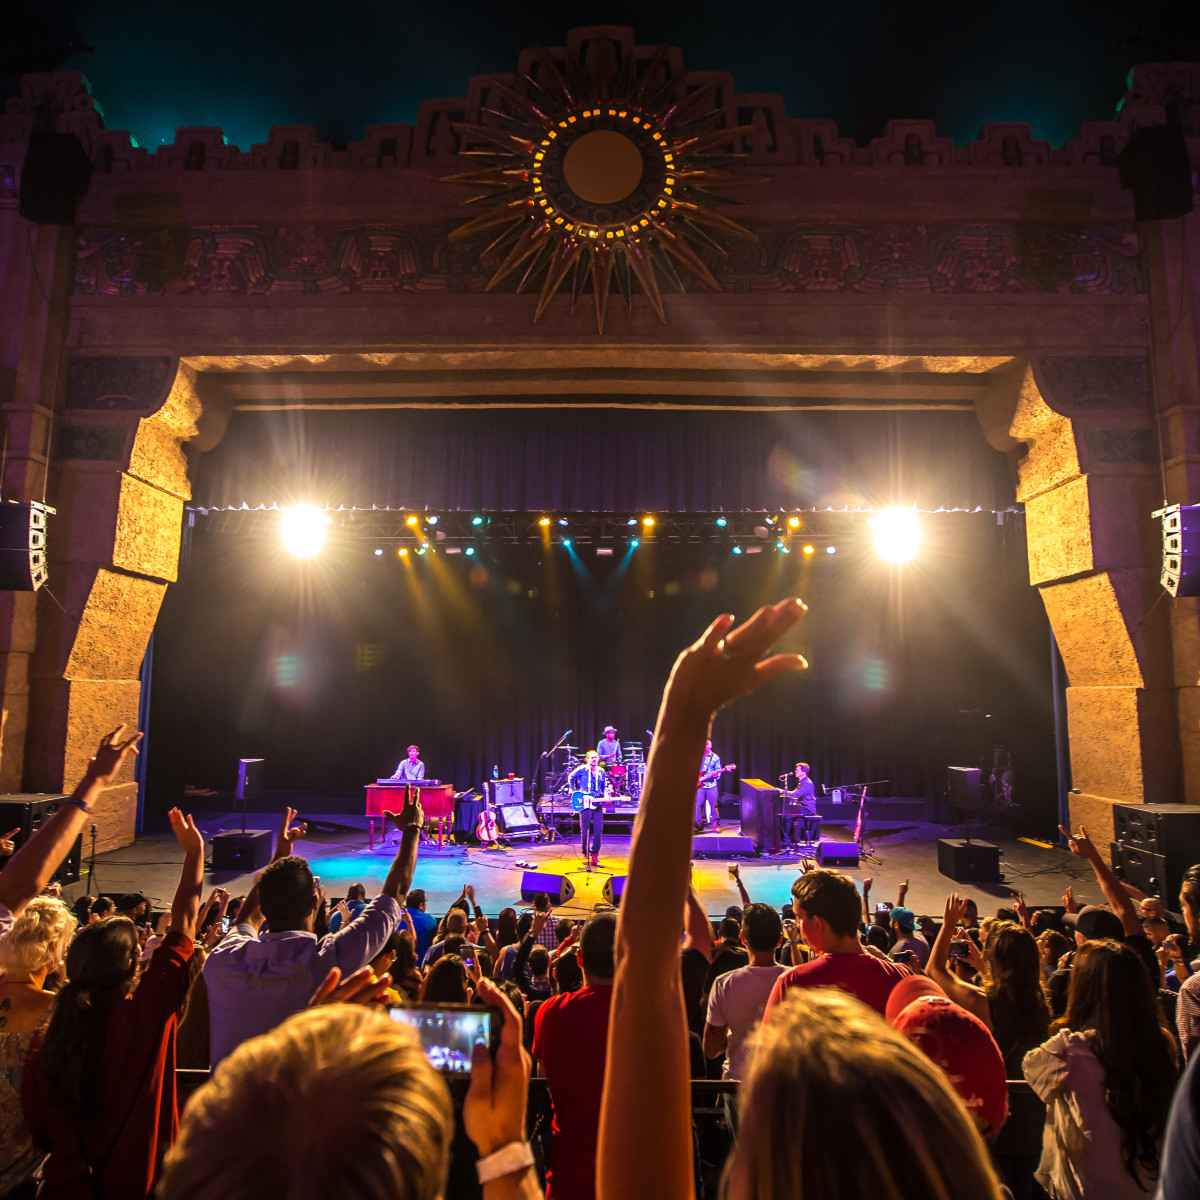 The Aztec Theatre in San Antonio